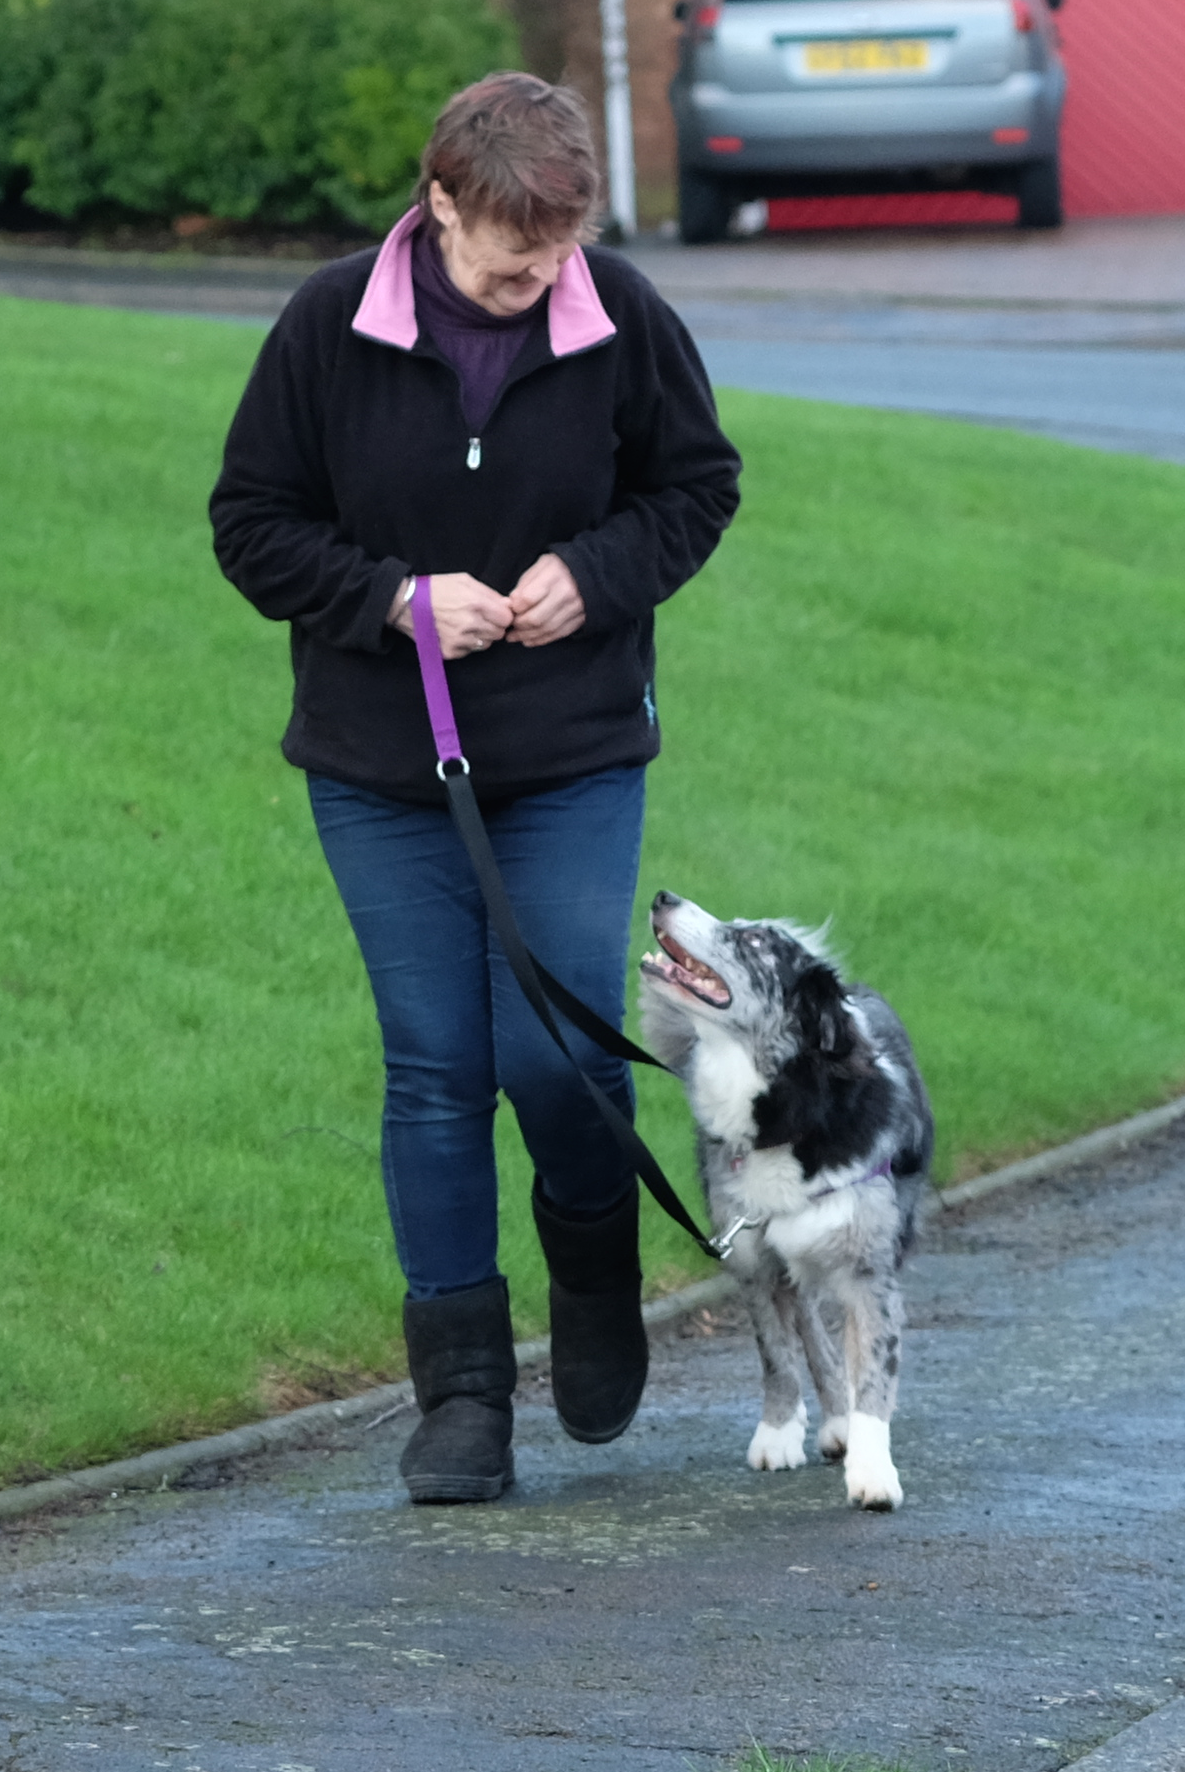 Dog training, new puppy, puppy training, two dogs   Can you walk two dogs as easily as one? With a bit of training you can!   FREE EMAIL COURSE   #newpuppy, #dogtraining, #newrescuedog, #puppytraining, #dogbehavior   www.brilliantfamilydog.com